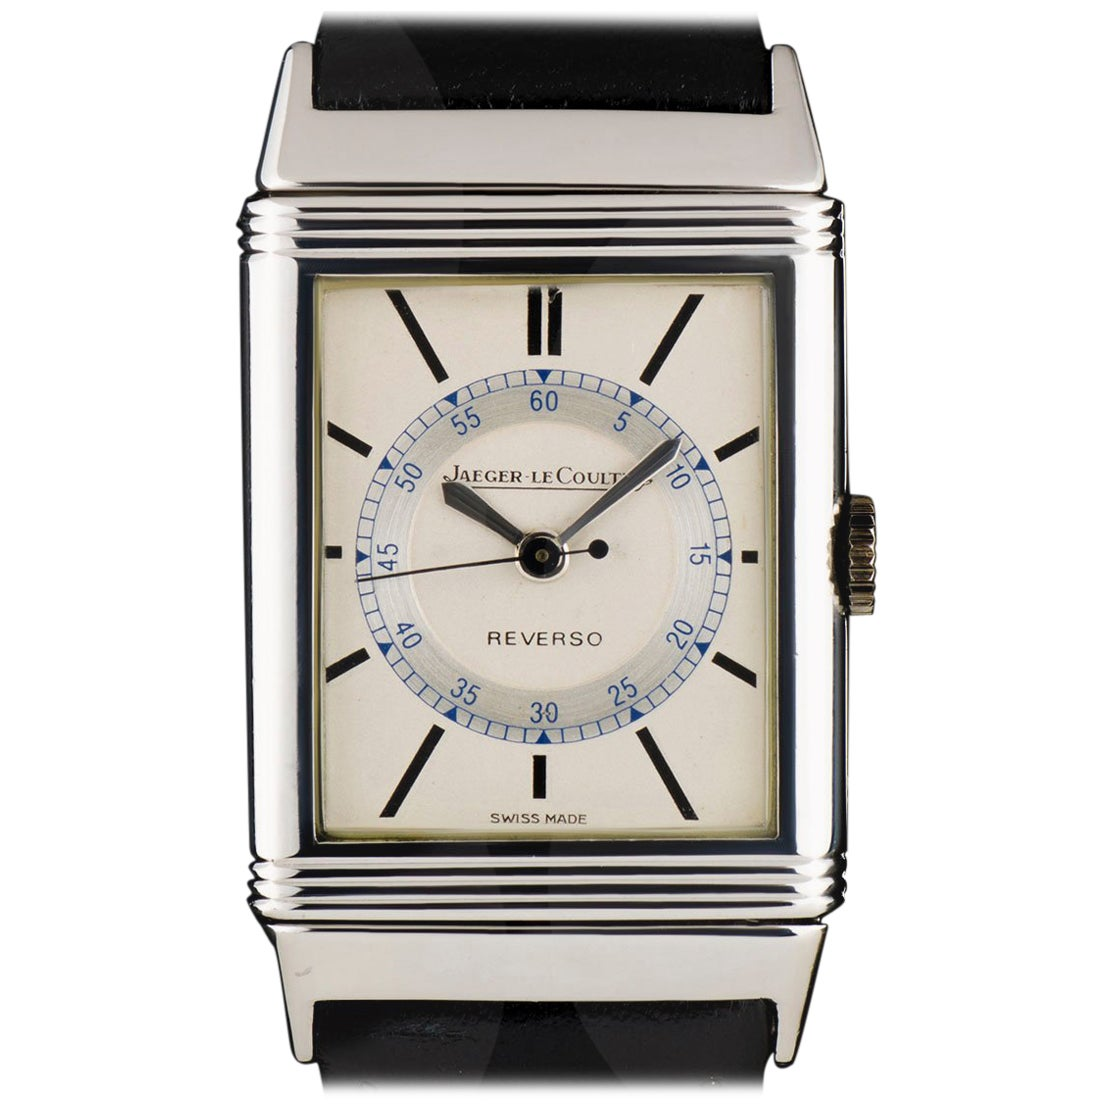 Jaeger LeCoultre Reverso Vintage Gents Steel Silver Dial Manual Wind Wristwatch